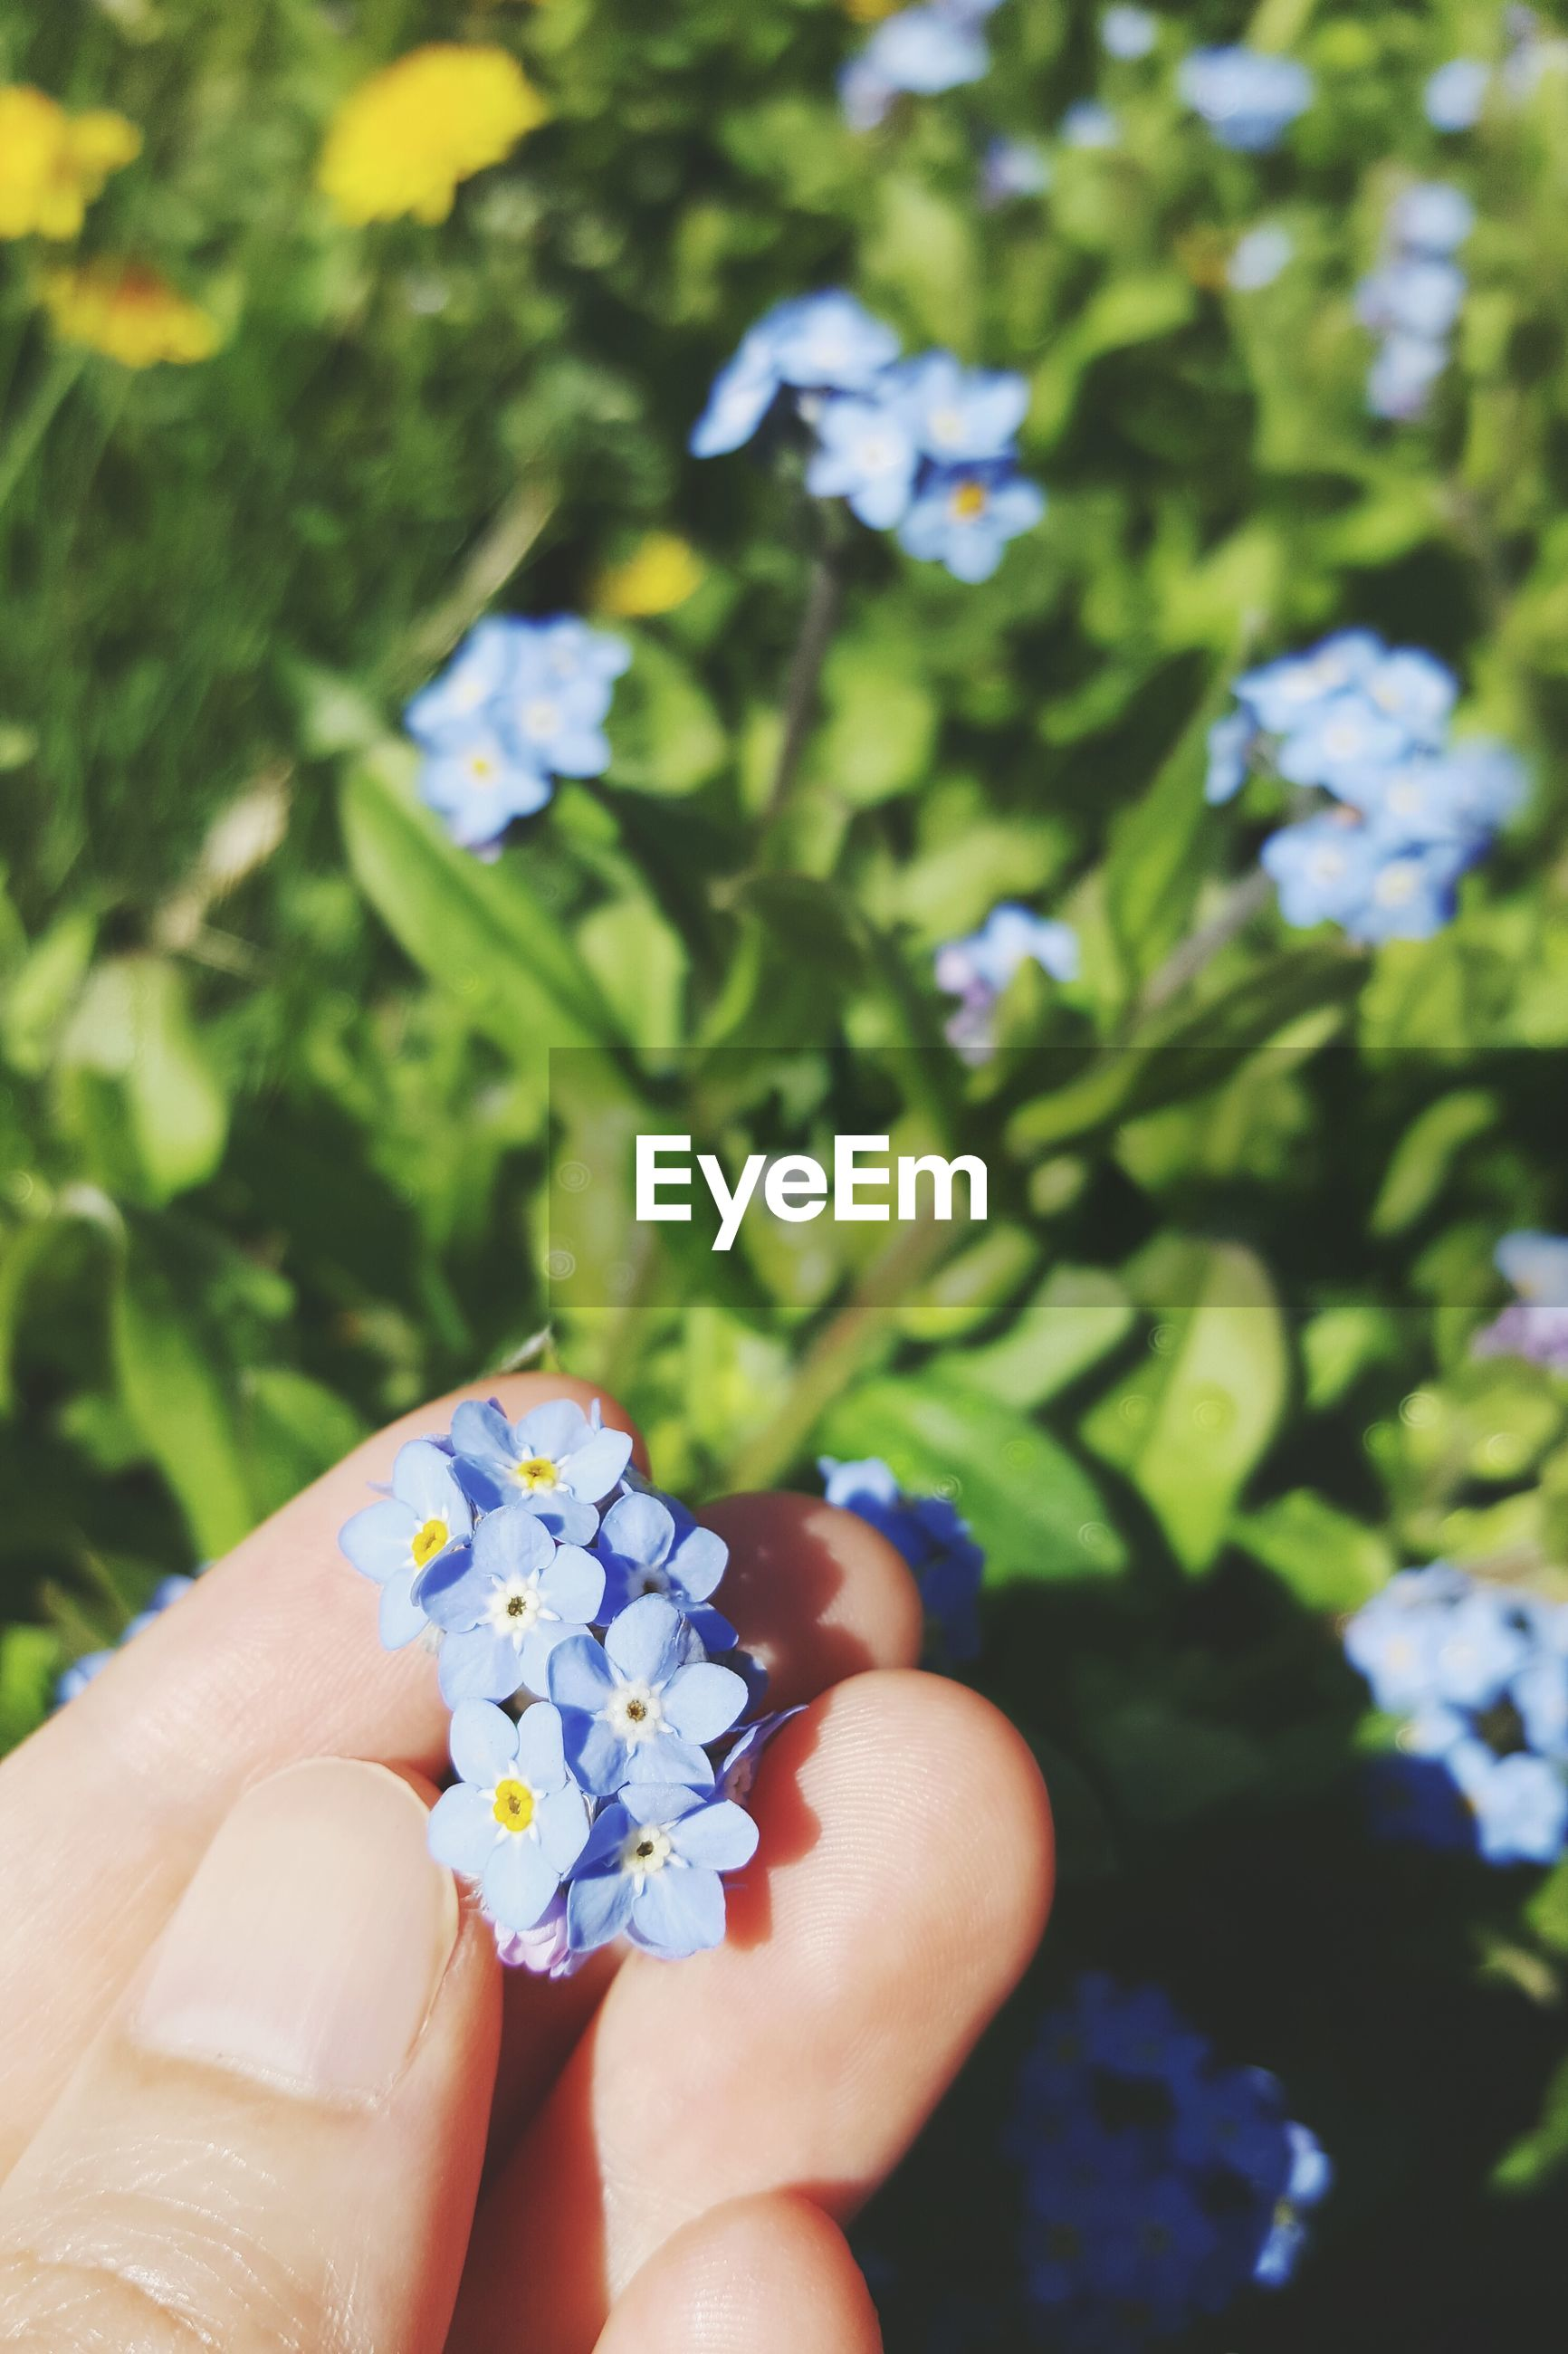 Cropped hand holding flowers